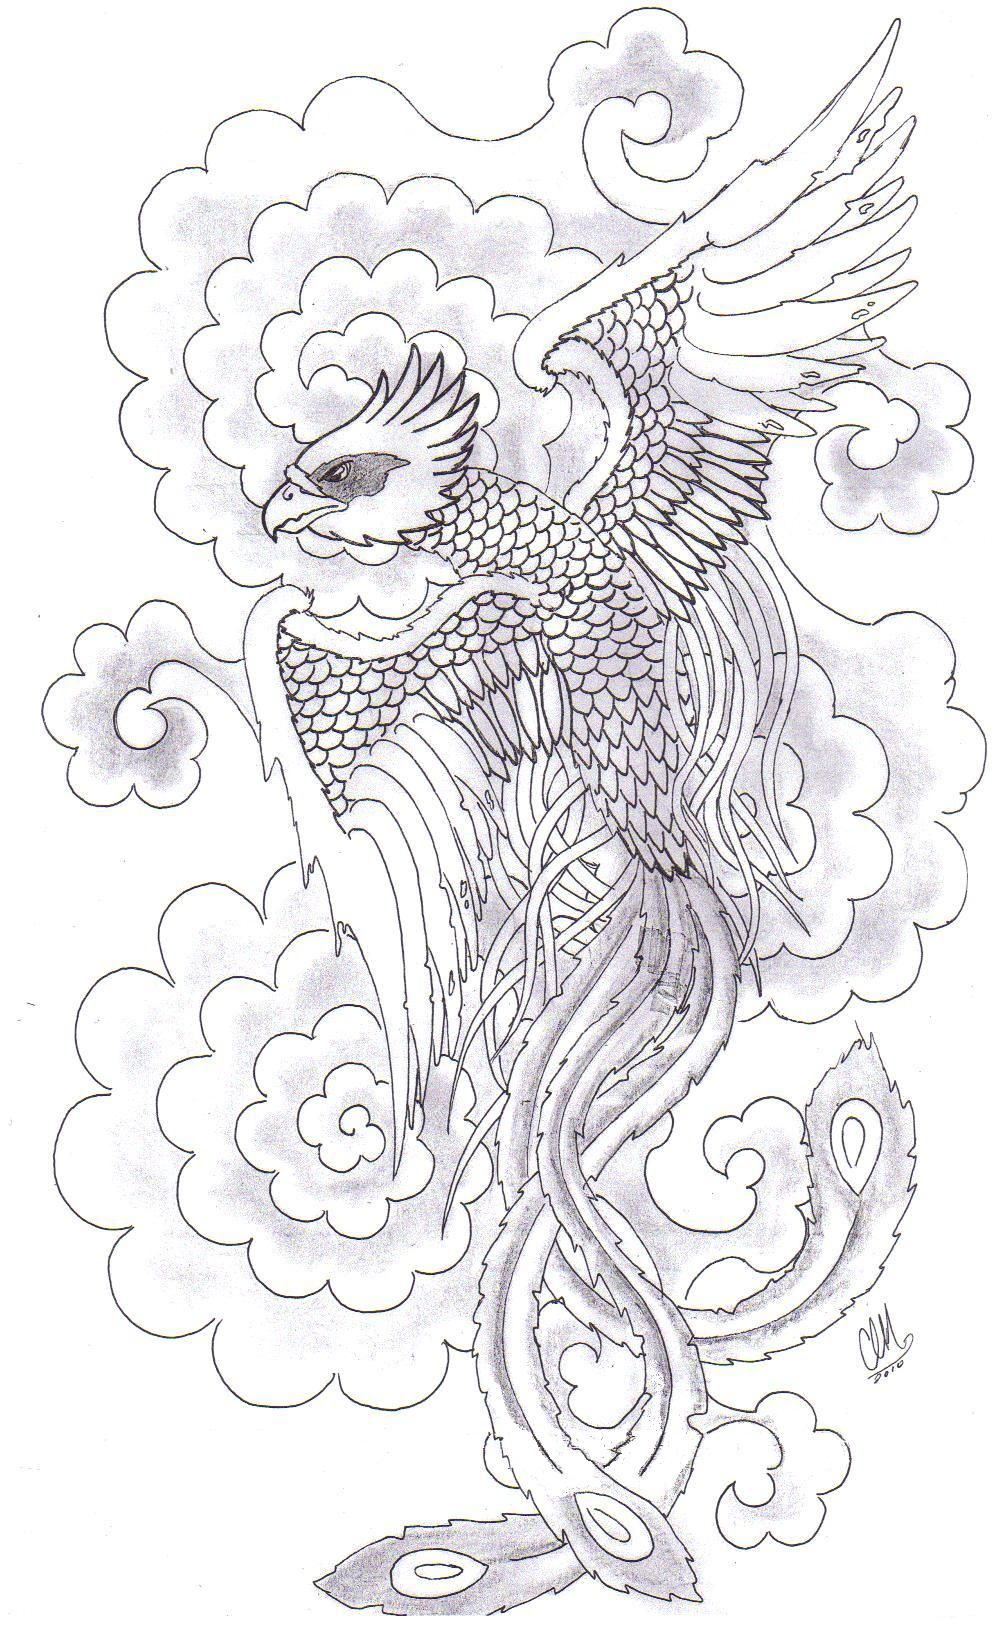 Phoenix Jpg 992 1632 Tattoo Dragon And Phoenix Phoenix Tattoo Japanese Phoenix Tattoo